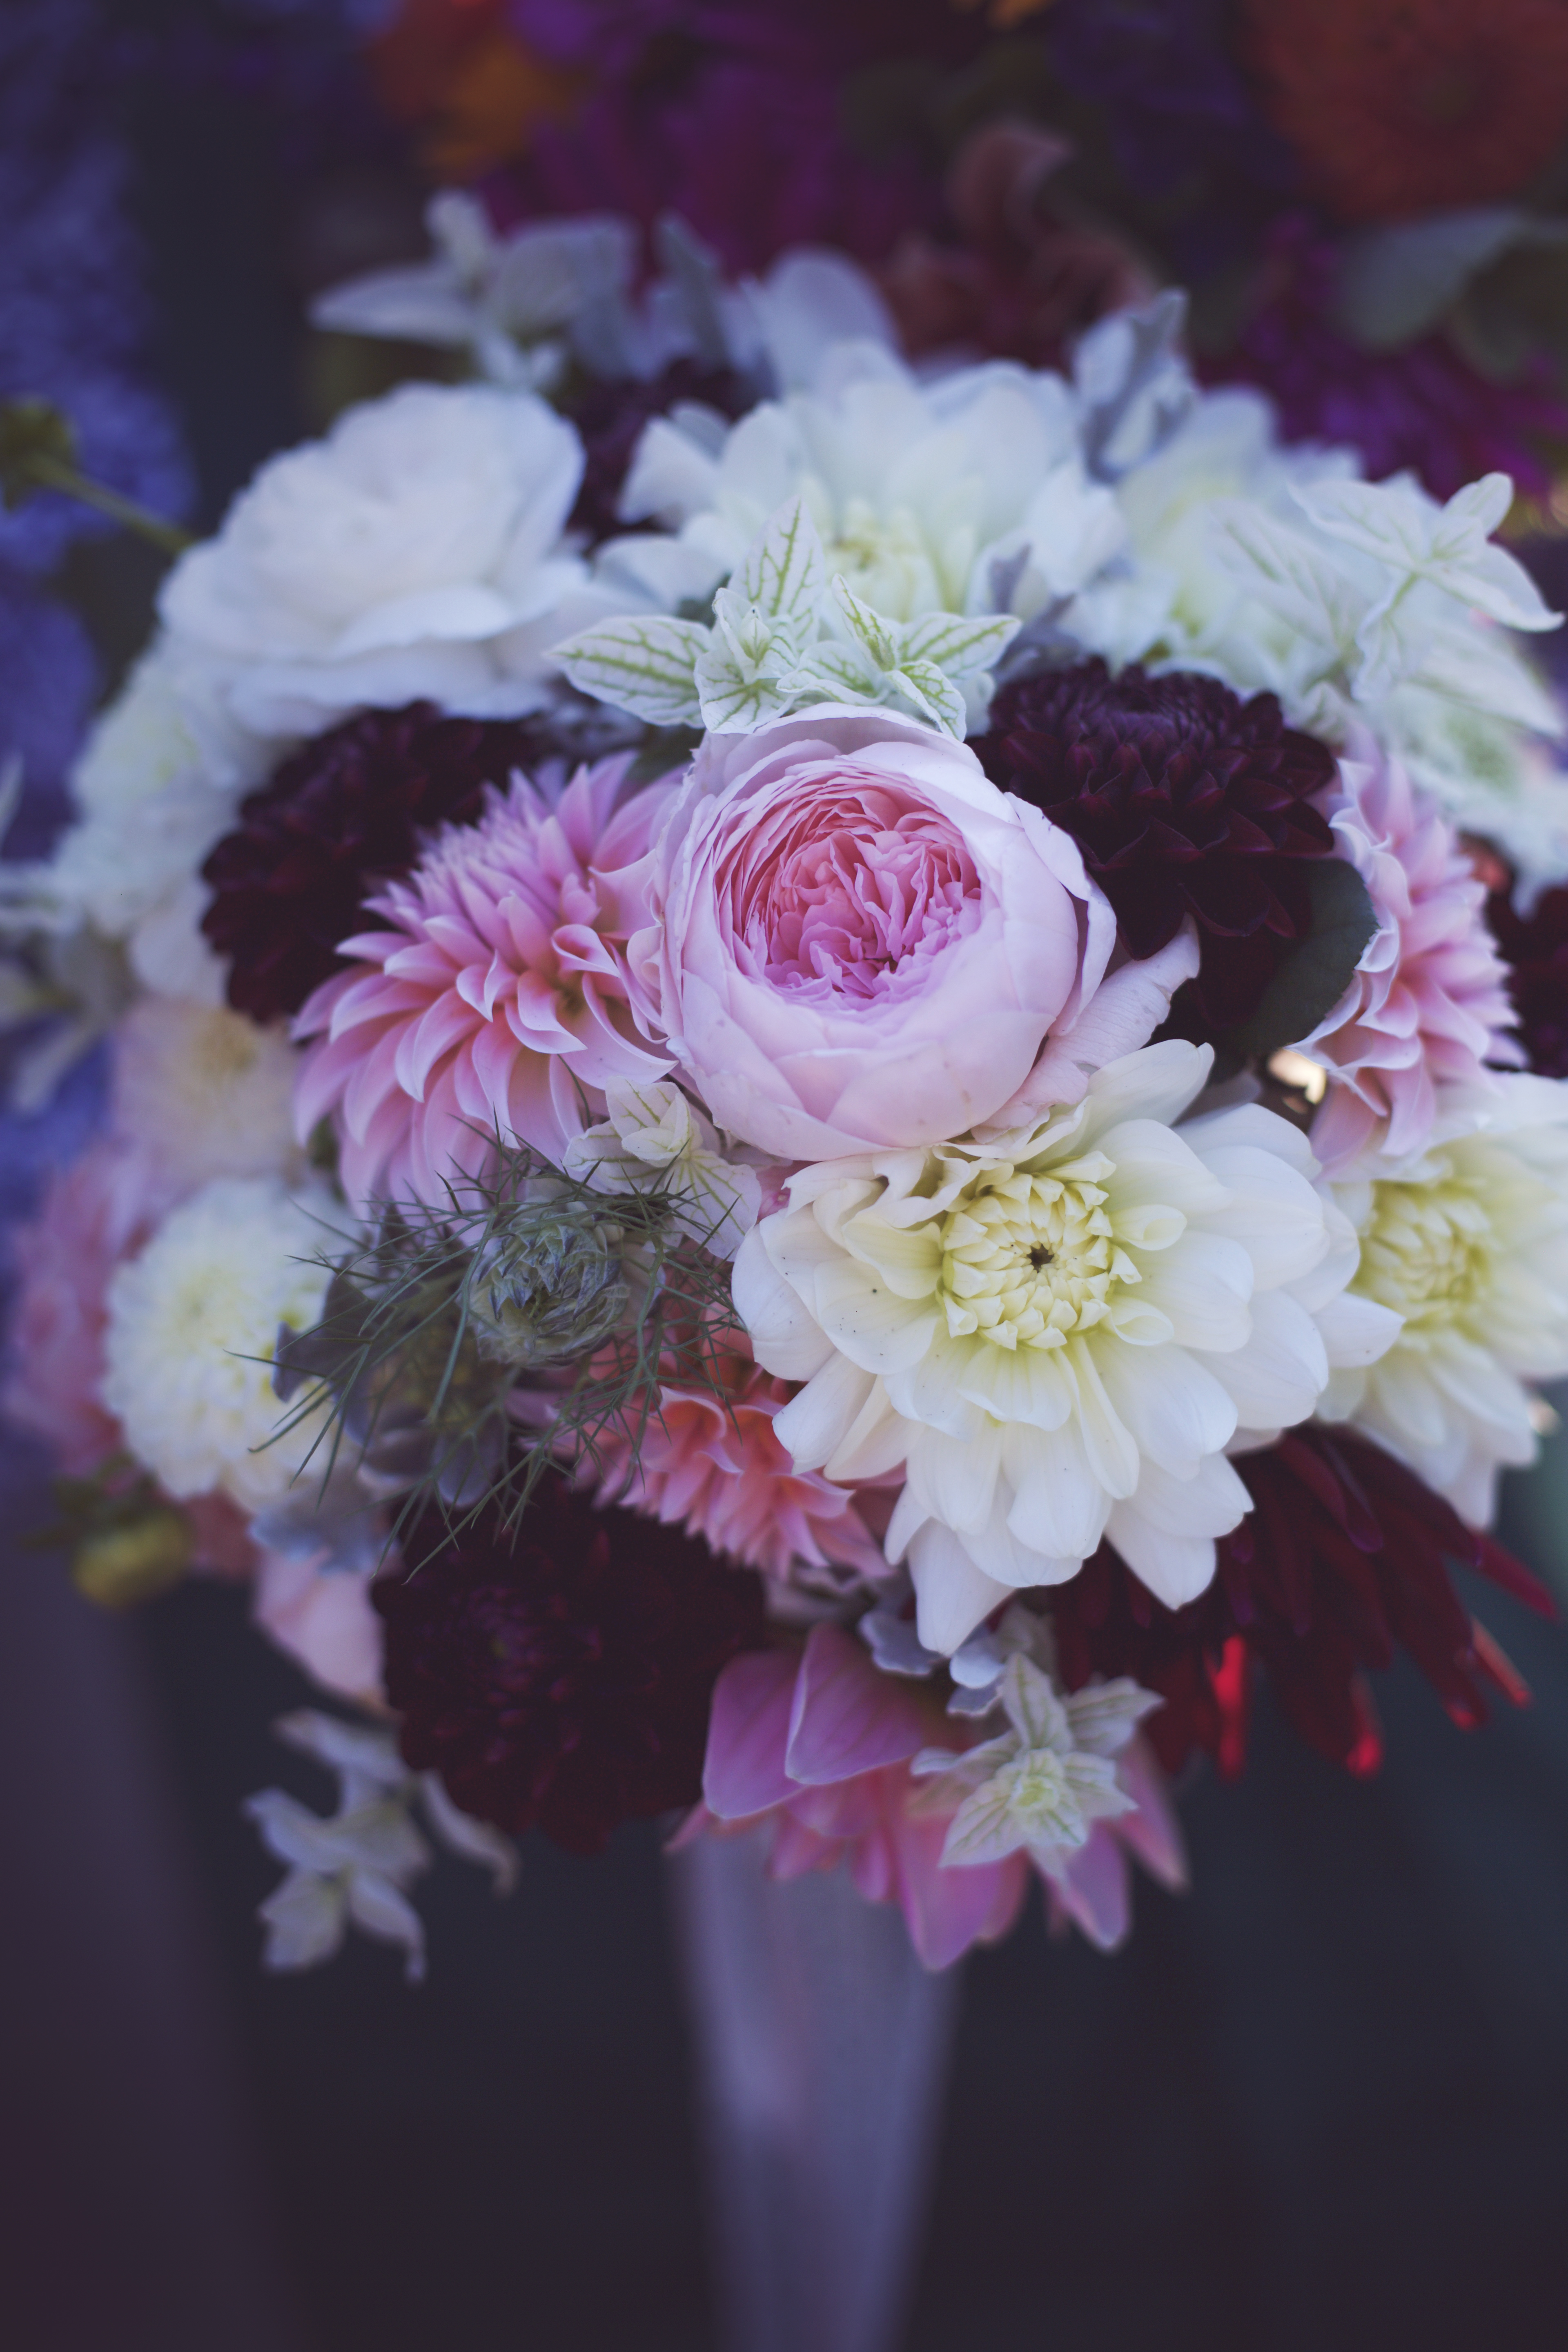 Wedding And Funeral Florist Bedfordshire Elworthy Flowers